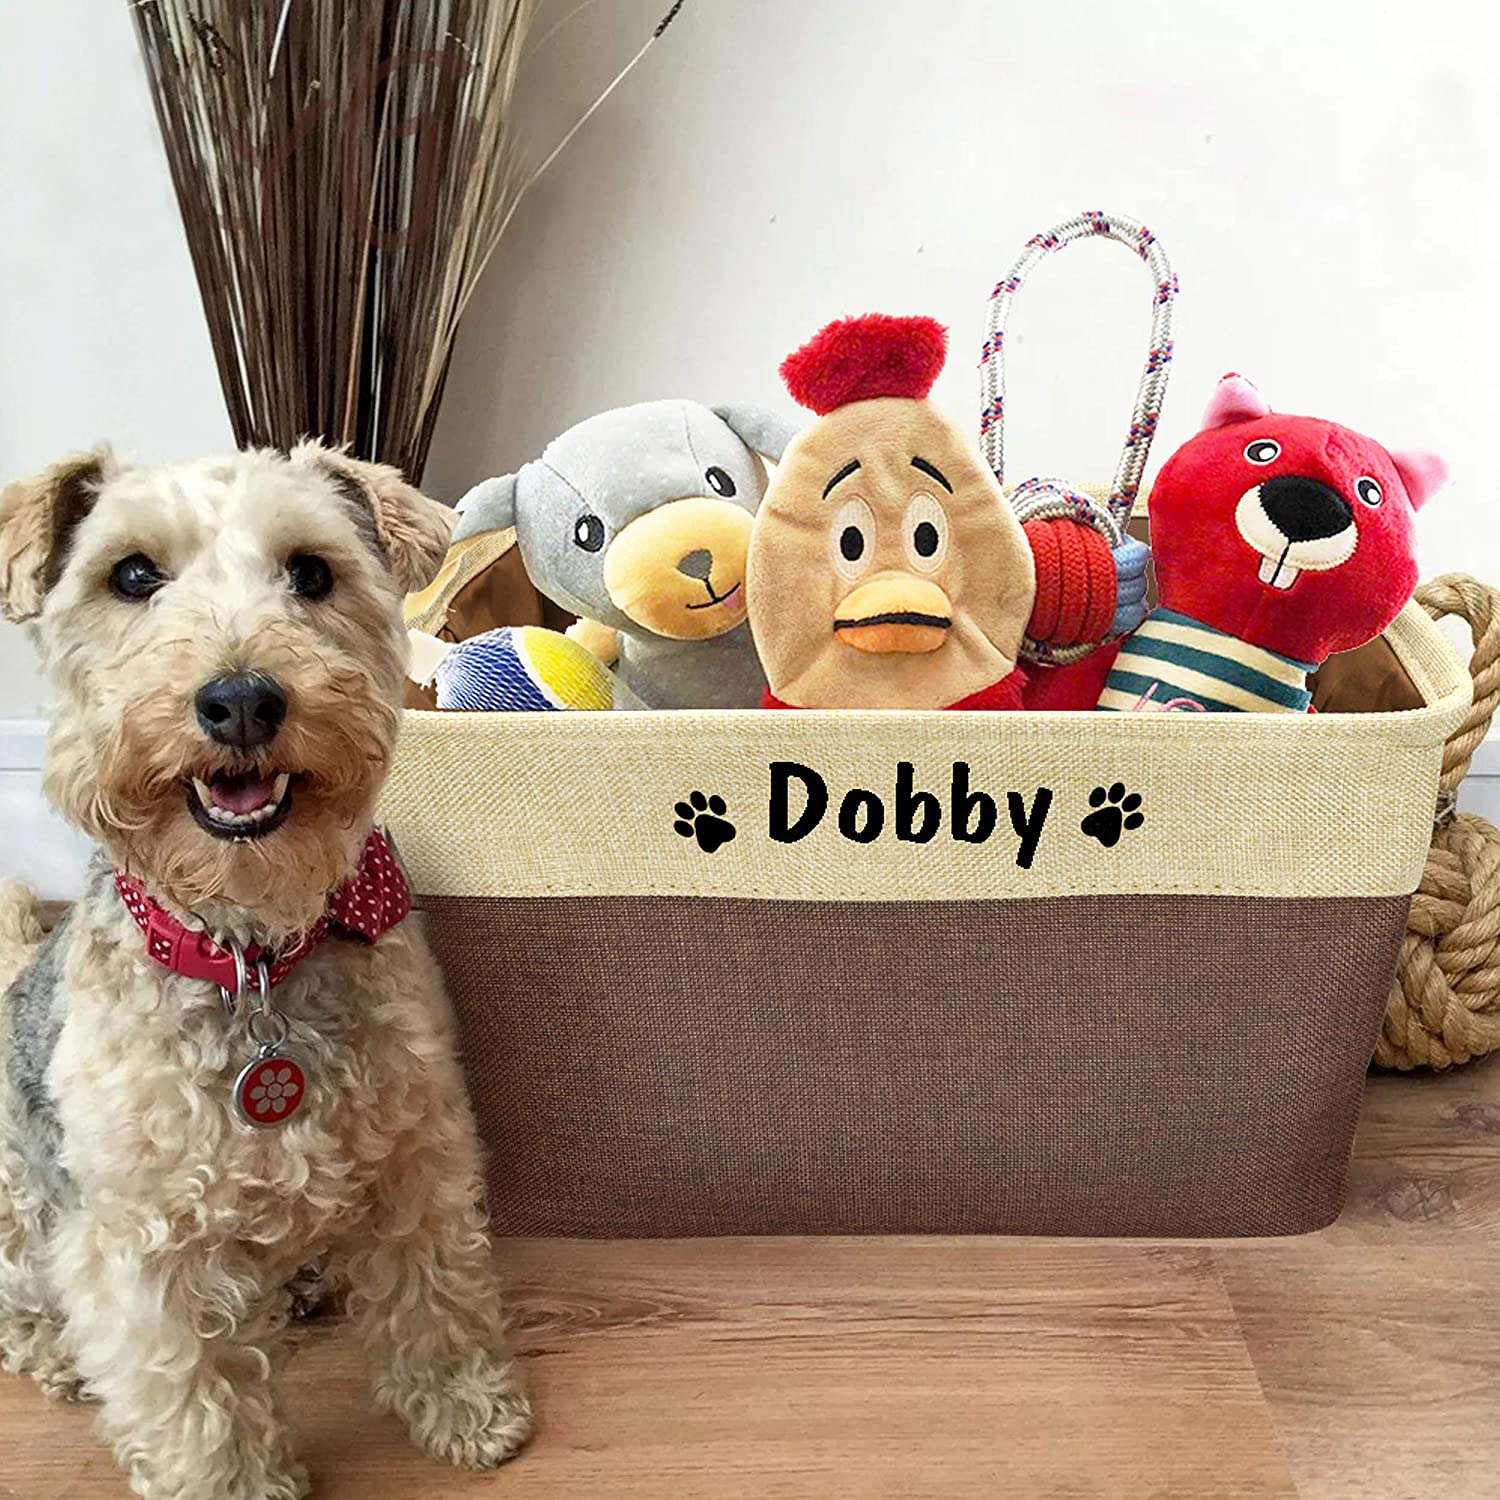 PET ARTIST Collapsible Dog Toy Storage Basket Bin with Personalized Pet's Name - Rectangular Storage Box Chest Organizer for Dog Toys,Dog Coats,Dog Clothing,Dog Apparel & Accessories